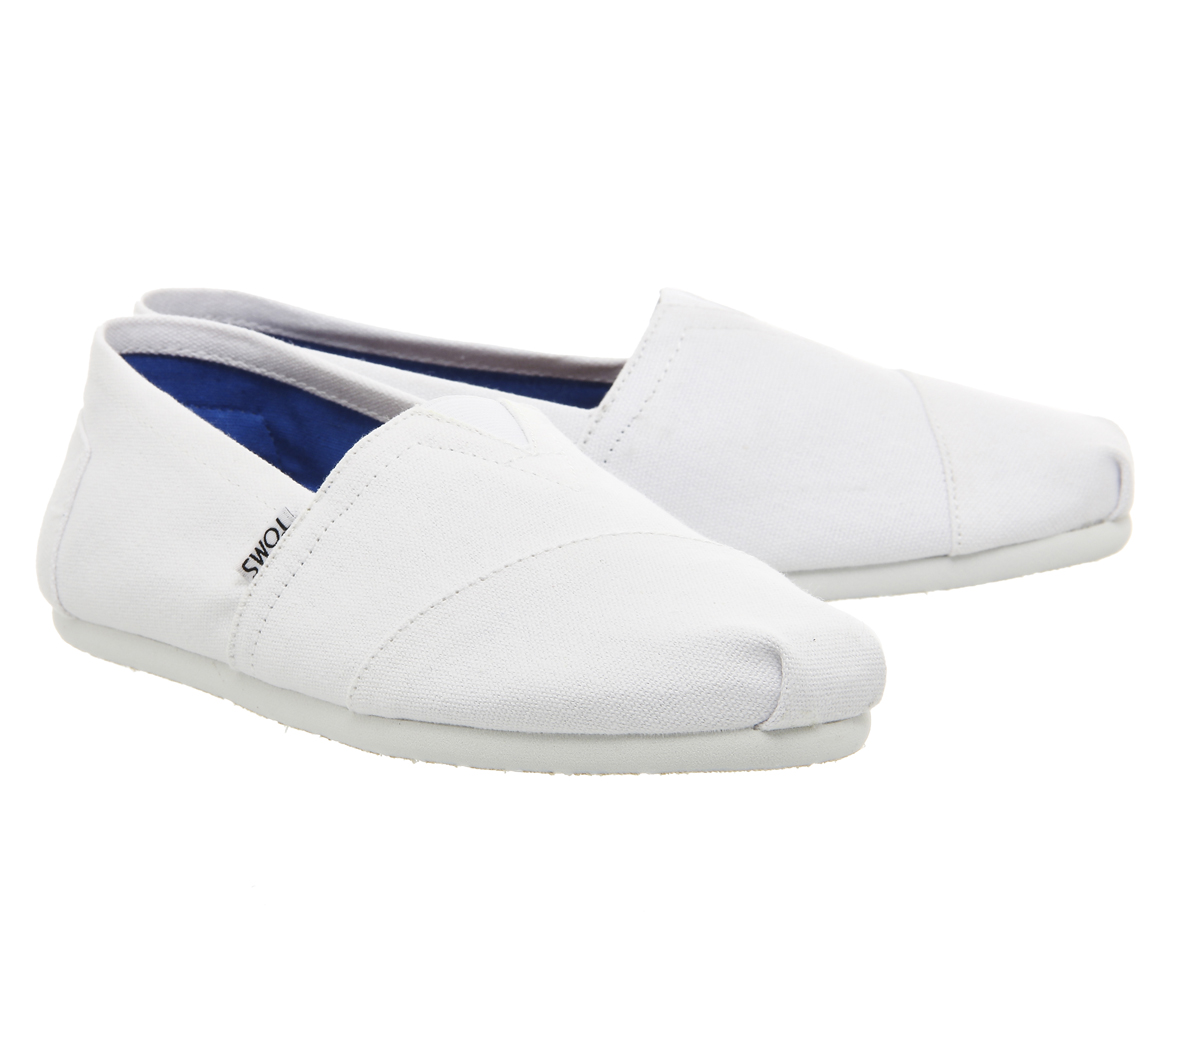 8f0136b938c Sentinel Mens Toms Classic Slip Ons Optical White Canvas Casual Shoes